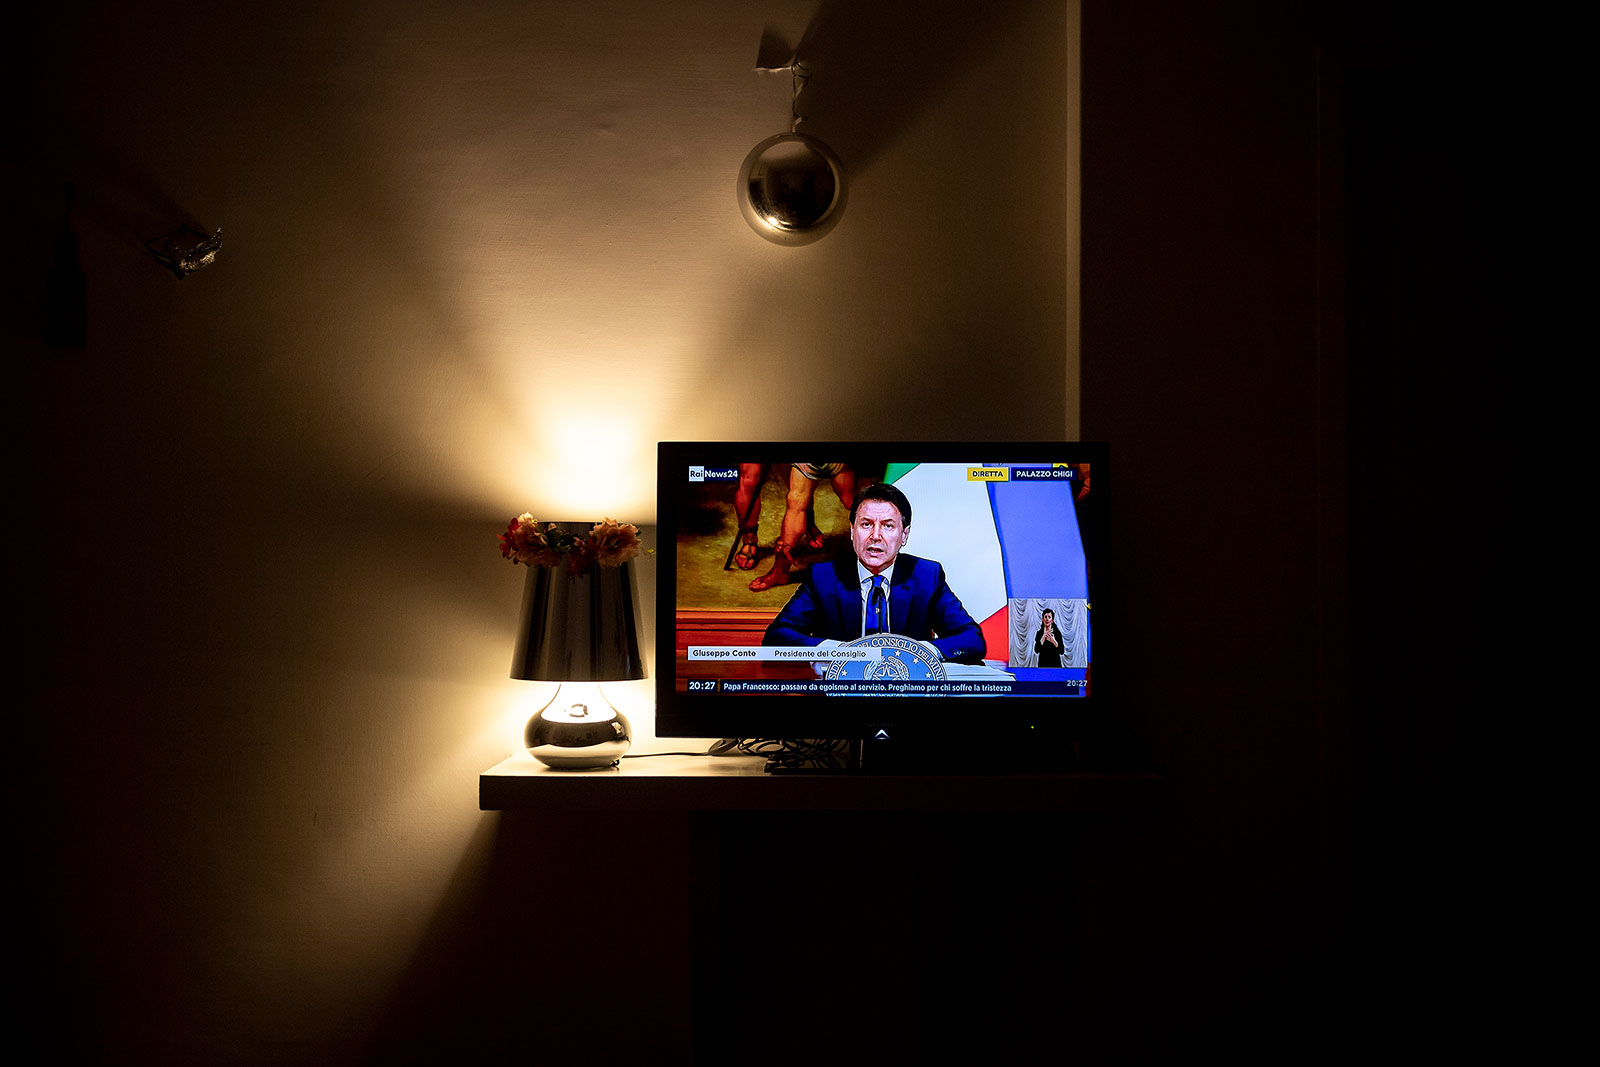 Italian Prime Minister Giuseppe Conte announces plans to loosen lockdown restrictions across the country during a television broadcast on April 26.